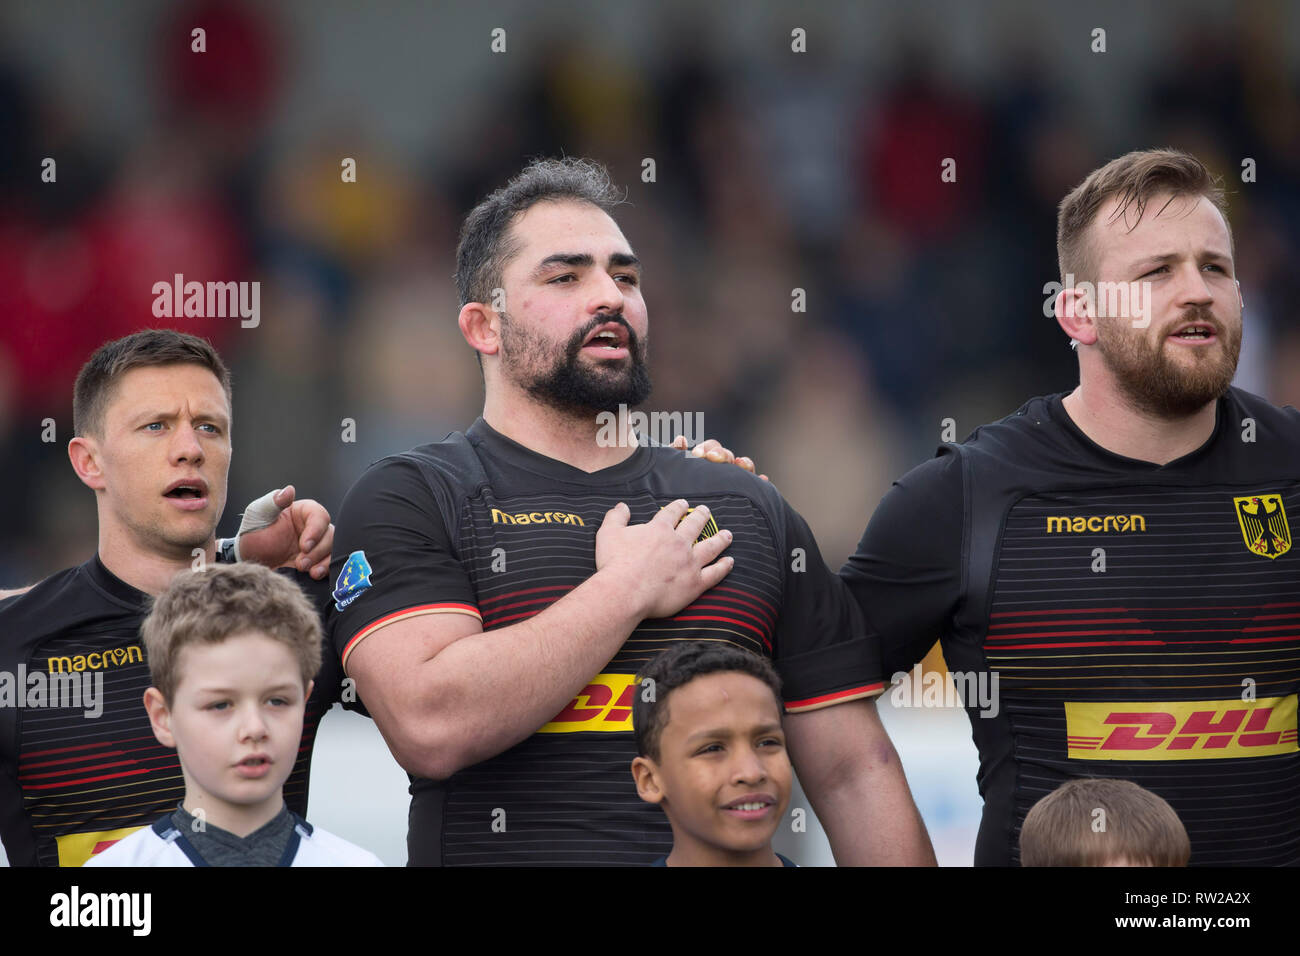 Heidelberg, Germany. 02nd Mar, 2019. Third match of the Rugby Europe Championship 2019: Germany-Russia on 09.02.2019 in Heidelberg. In the middle of the picture Samy Fuechsel (Germany, 3) sings the national anthem full of fervor. Left Tim Menzel (Germany, 9), right Joern Schroeder (Germany, 4). Credit: Jürgen Kessler/dpa/Alamy Live News - Stock Image